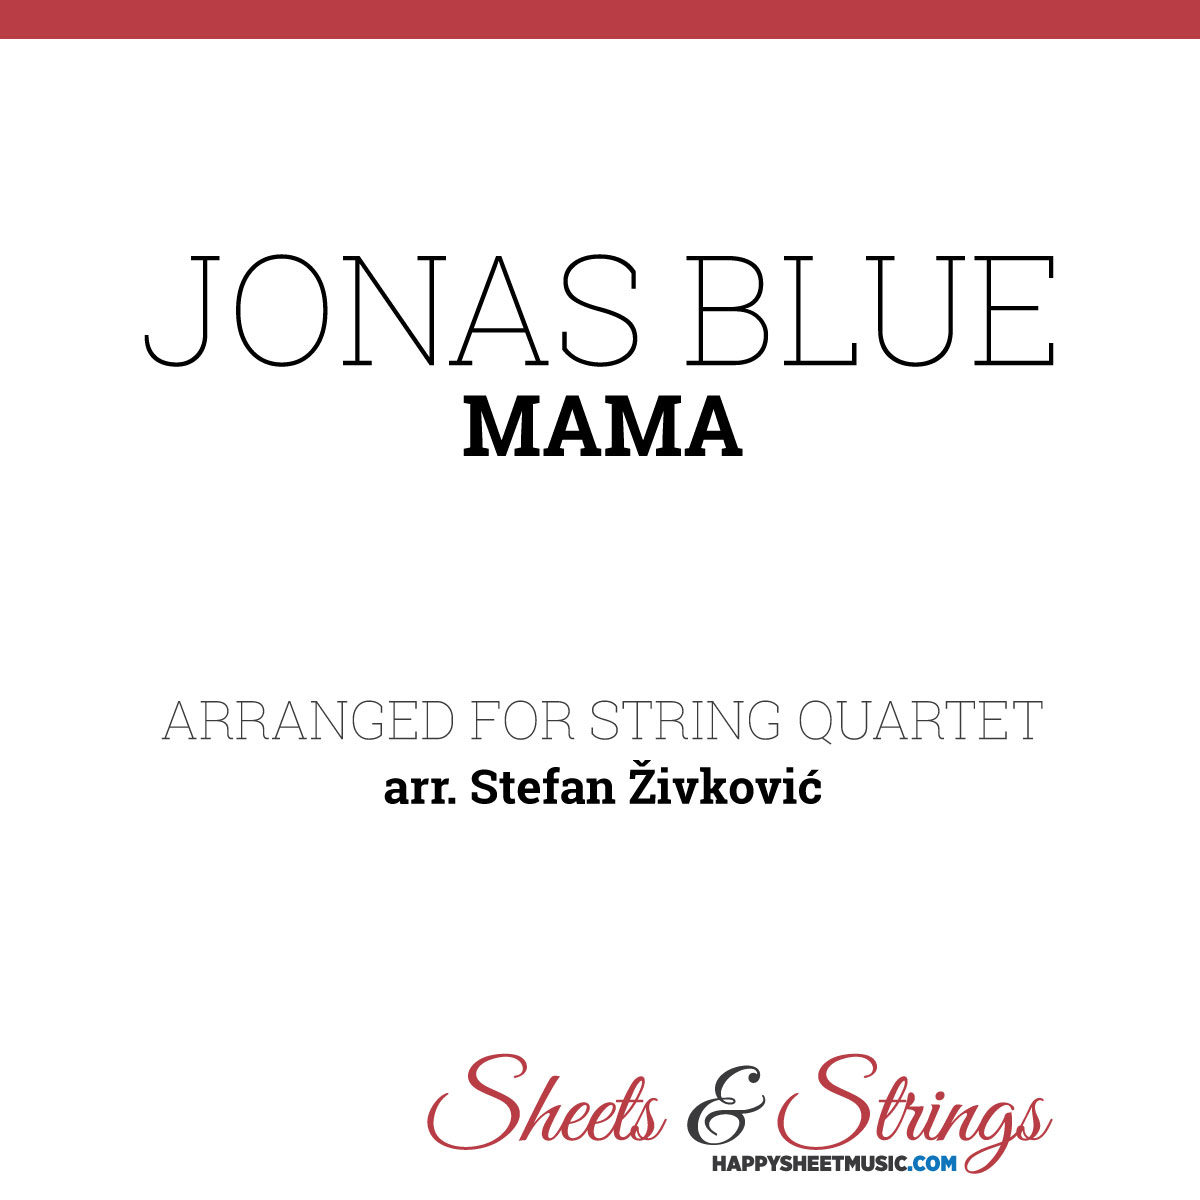 Jonas Blue Mama - Sheet Music for String quartet